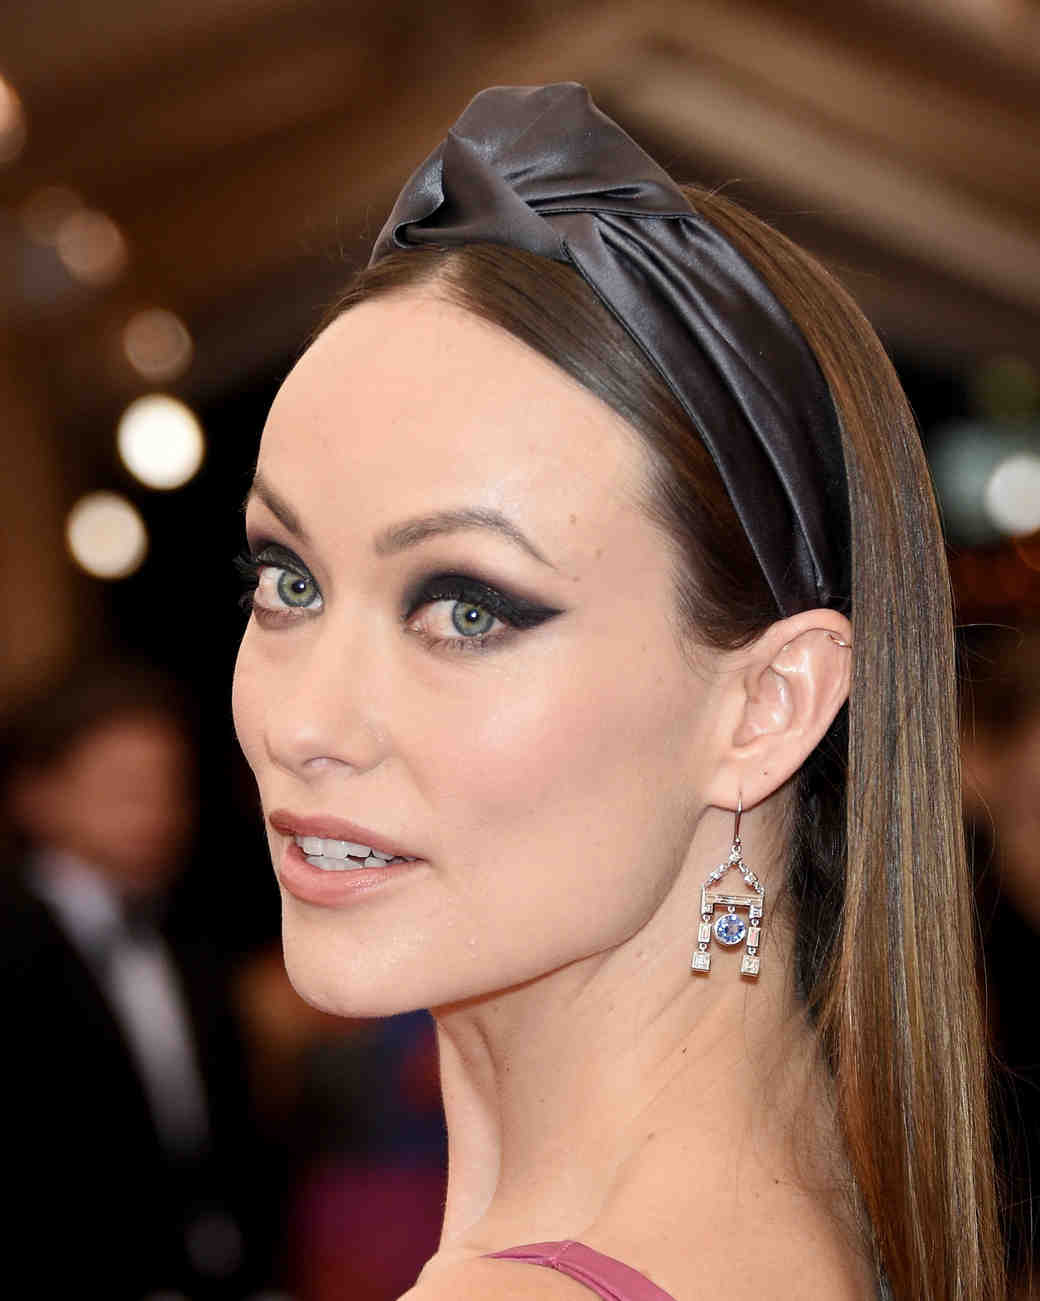 celebrity-wedding-makeup-oliviawilde-0915.jpg